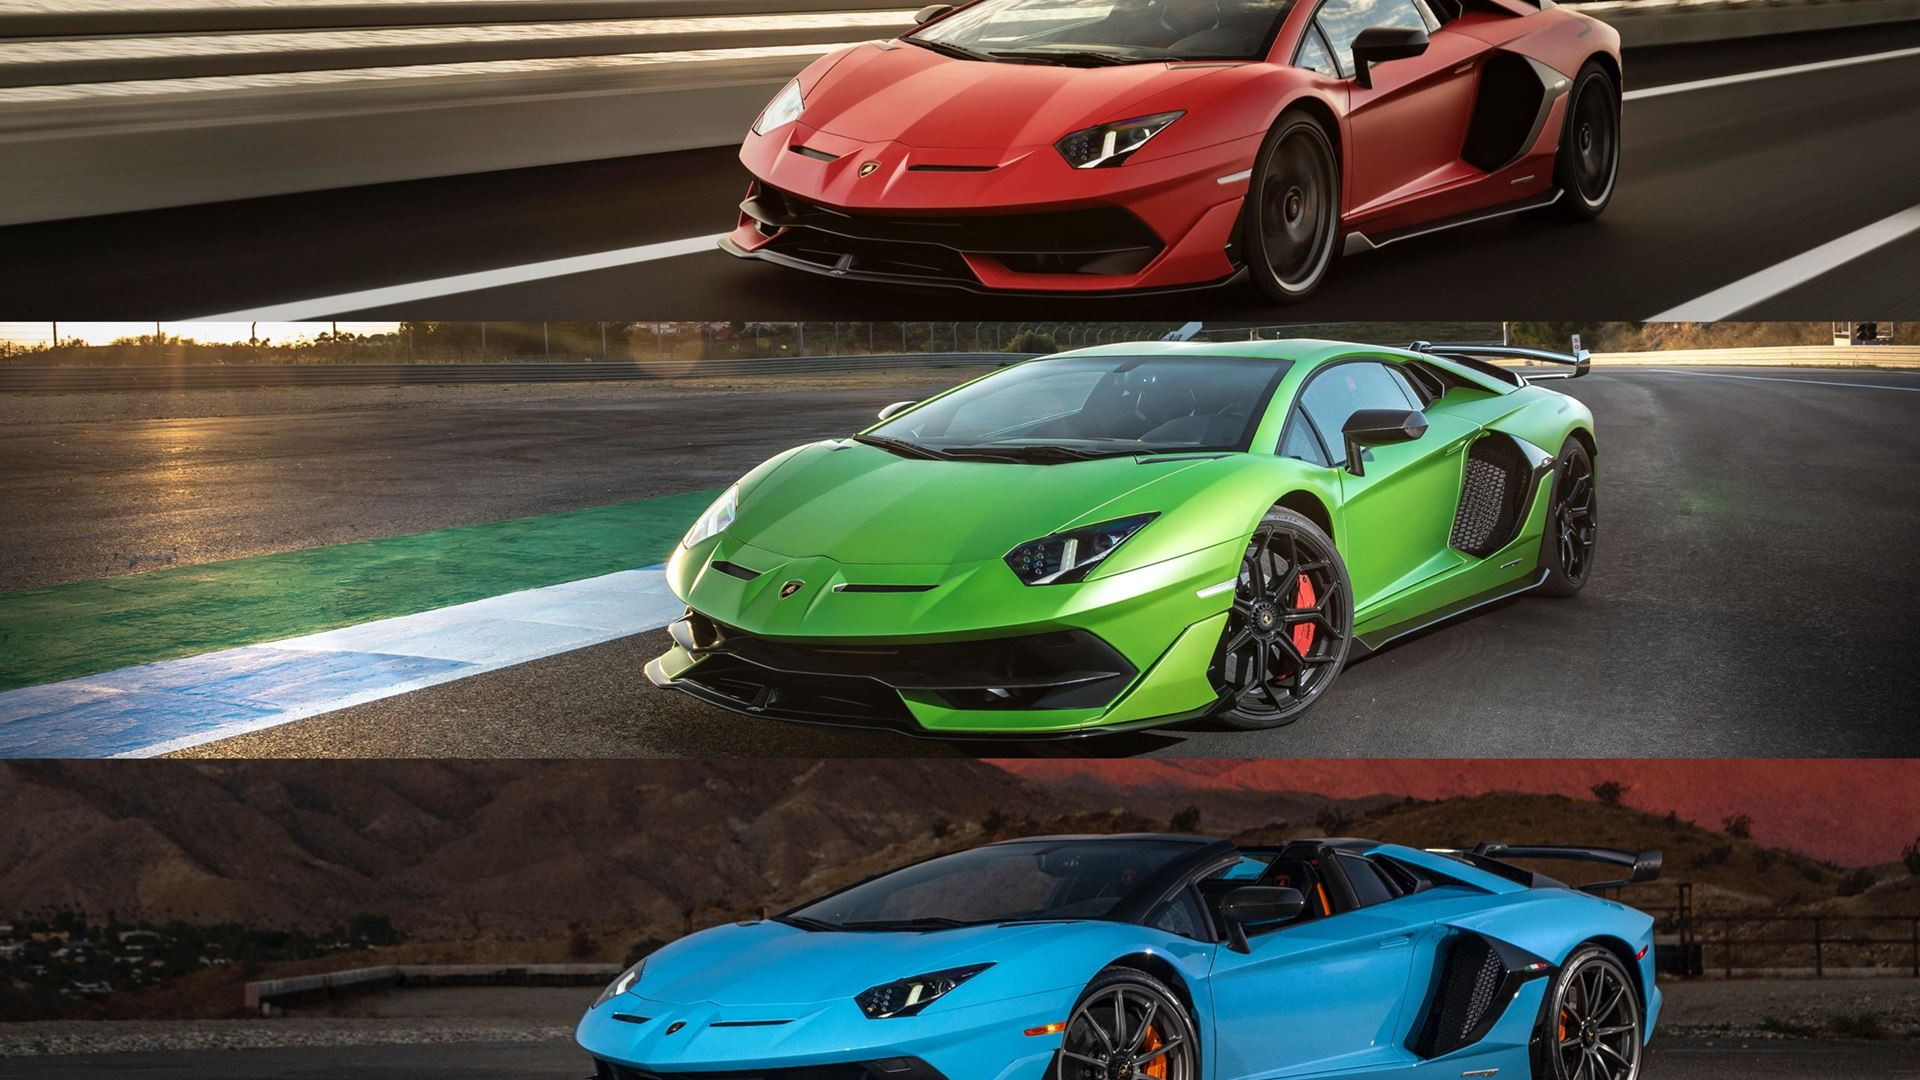 #Focu5on: 5 things you don't know about Lamborghini Ad Personam - Image 3